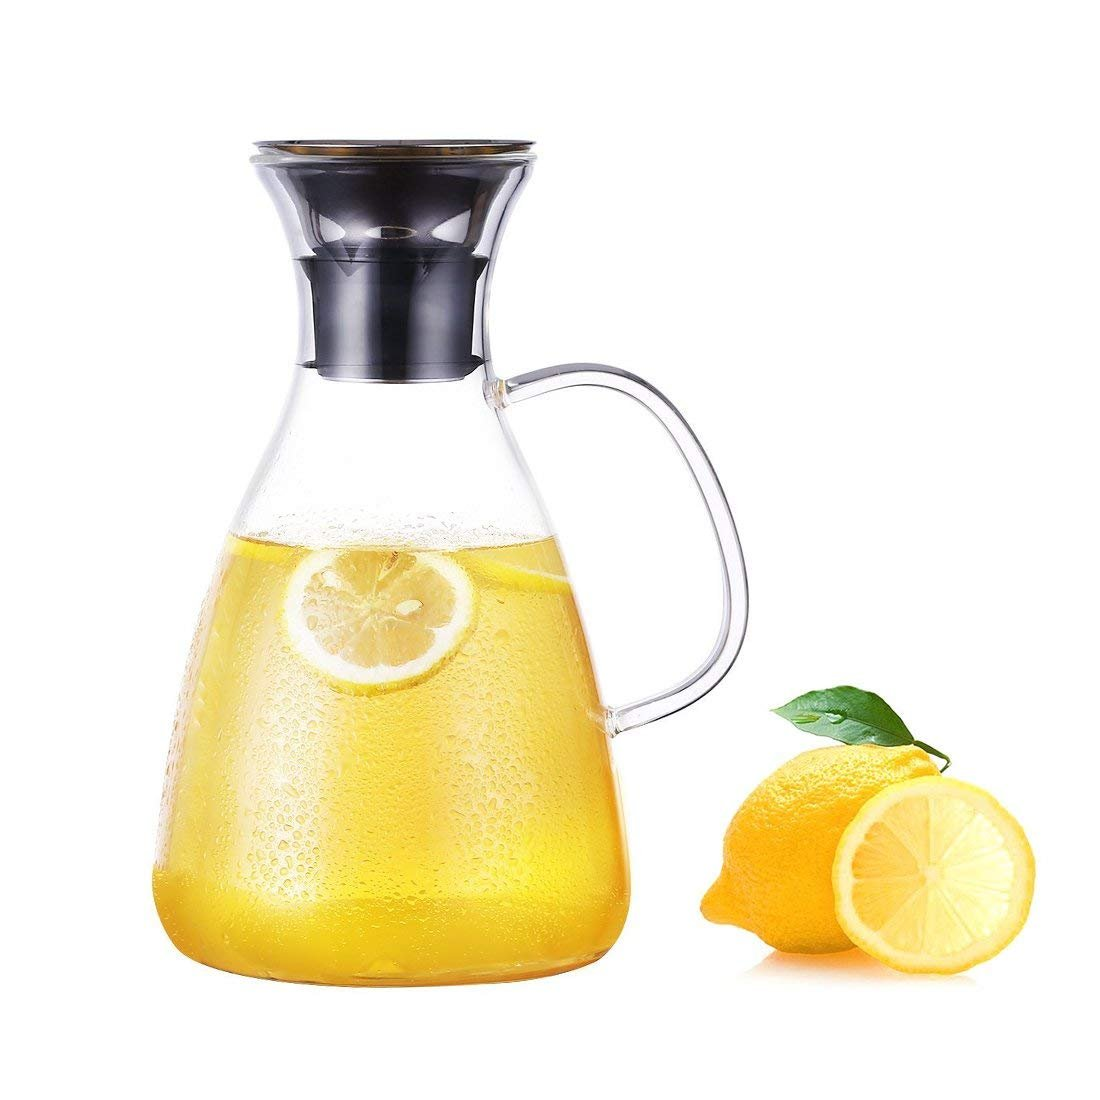 JIAQI 1500ML Glass Drip-free Carafe with Stainless Steel Flip-top Lid, Hot and Cold Glass Water Pitcher, Tea/Coffee Maker & Cafe, Iced Tea, Beverage Pitcher As Well As for Decanting and Serving Wine